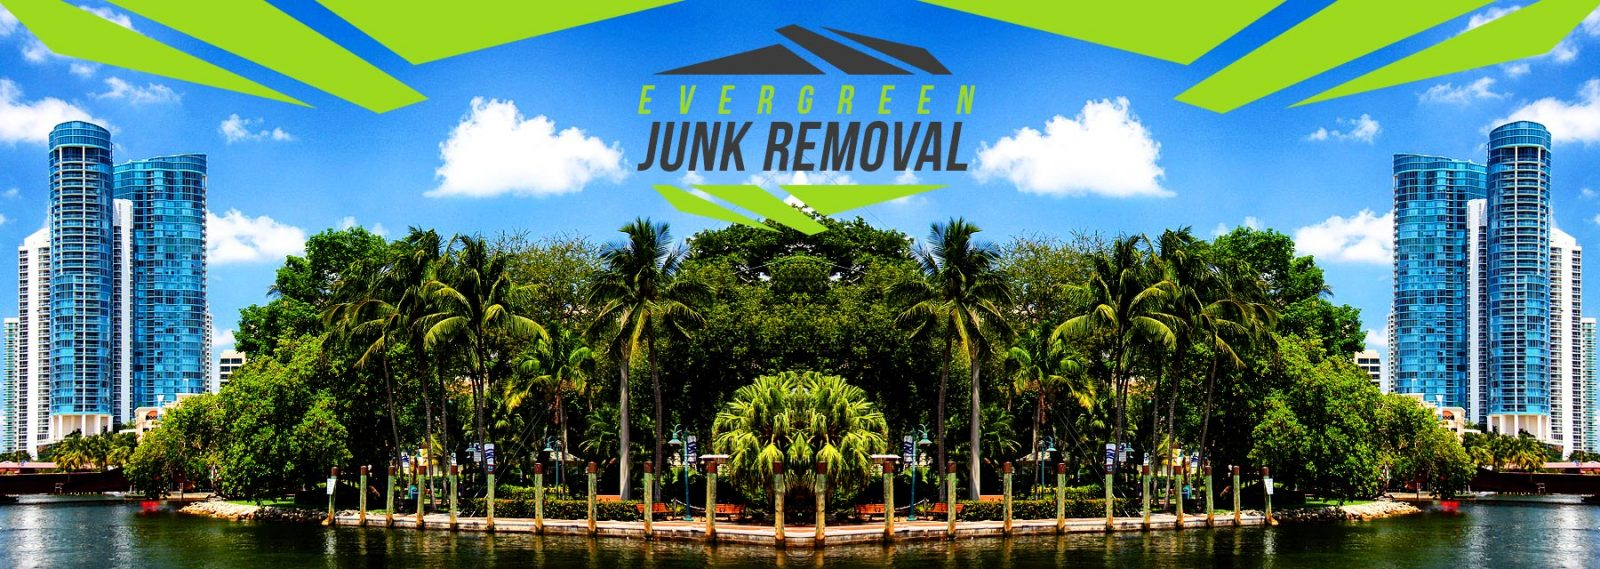 Miami Beach Hot Tub Removal Company